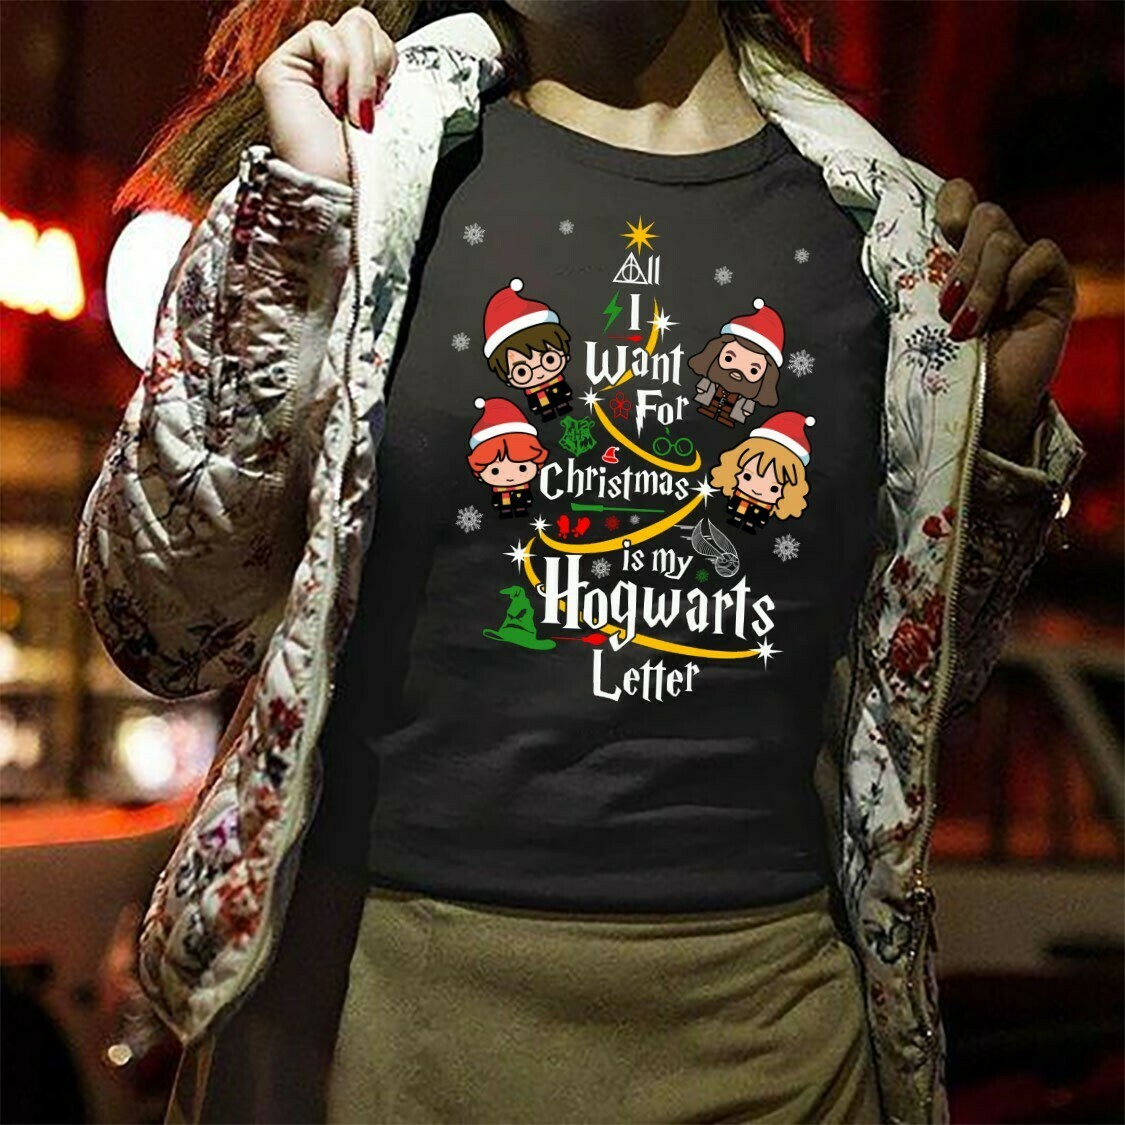 I Want For Christmas Is My Hogwarts Letter Harry Porter And Friends Tree Merry Christmas Lovers Christmas Gift for Best Friend Family TShirt Long Sleeve Sweatshirt Hoodie Jolly Family Gifts